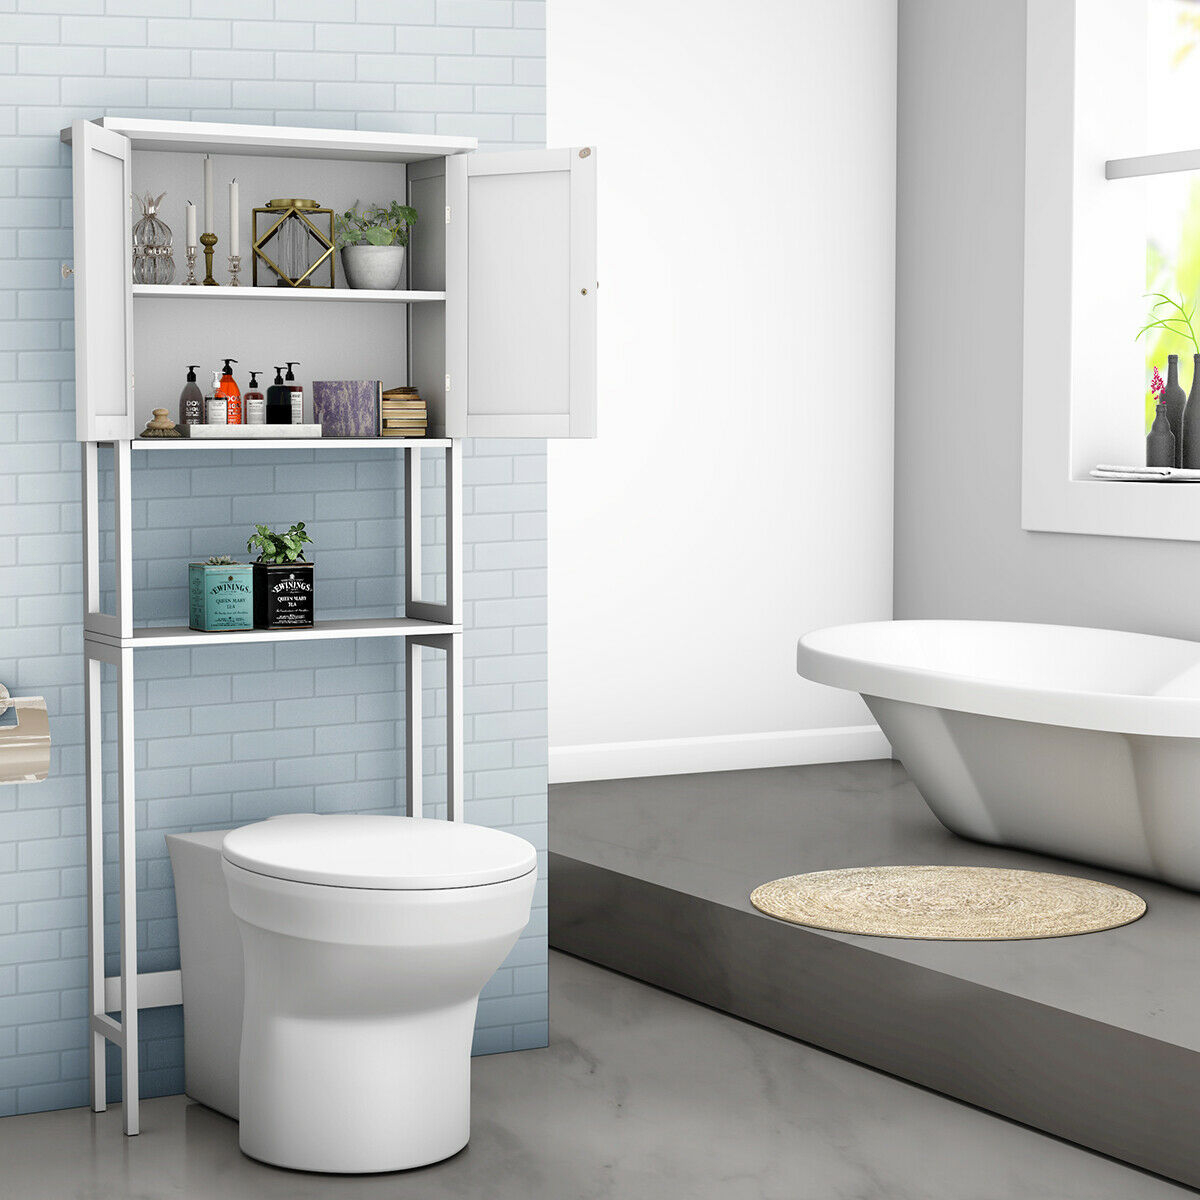 Toilet Over The Toilet Bathroom Storage Space Saver With Shelf Collect Cabinet White within sizing 1200 X 1200